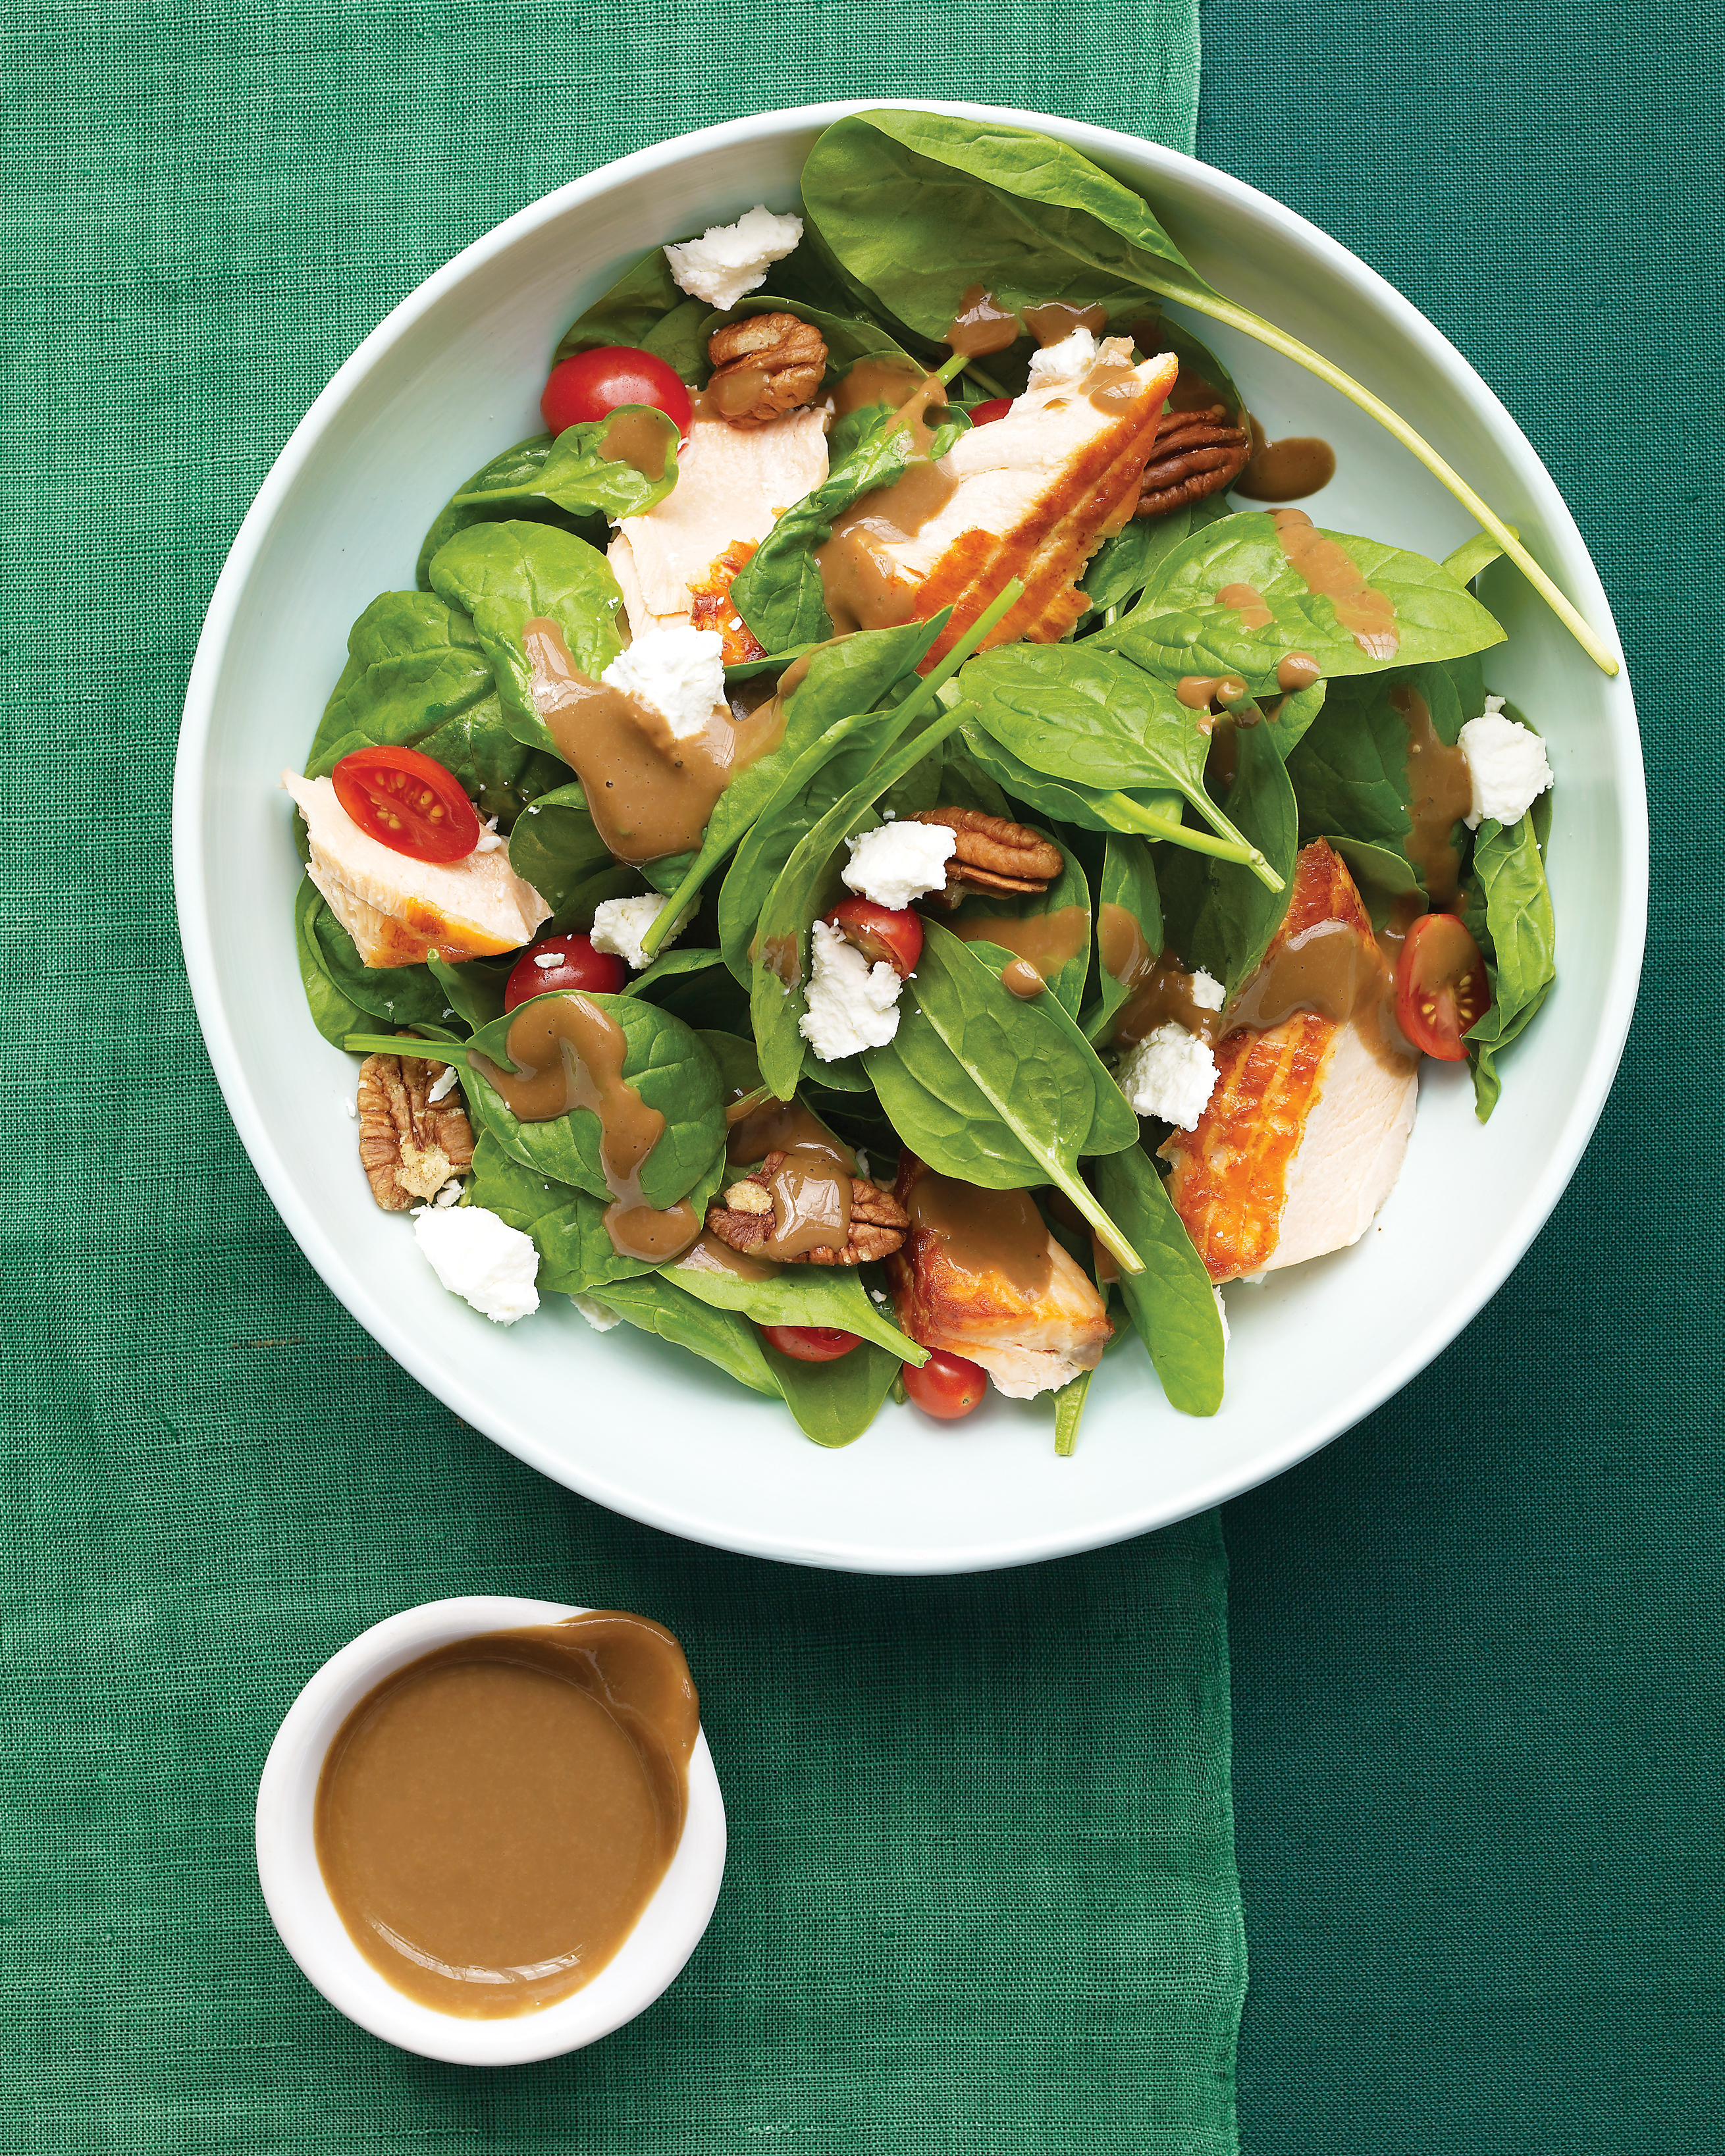 Spinach Salad with Salmon